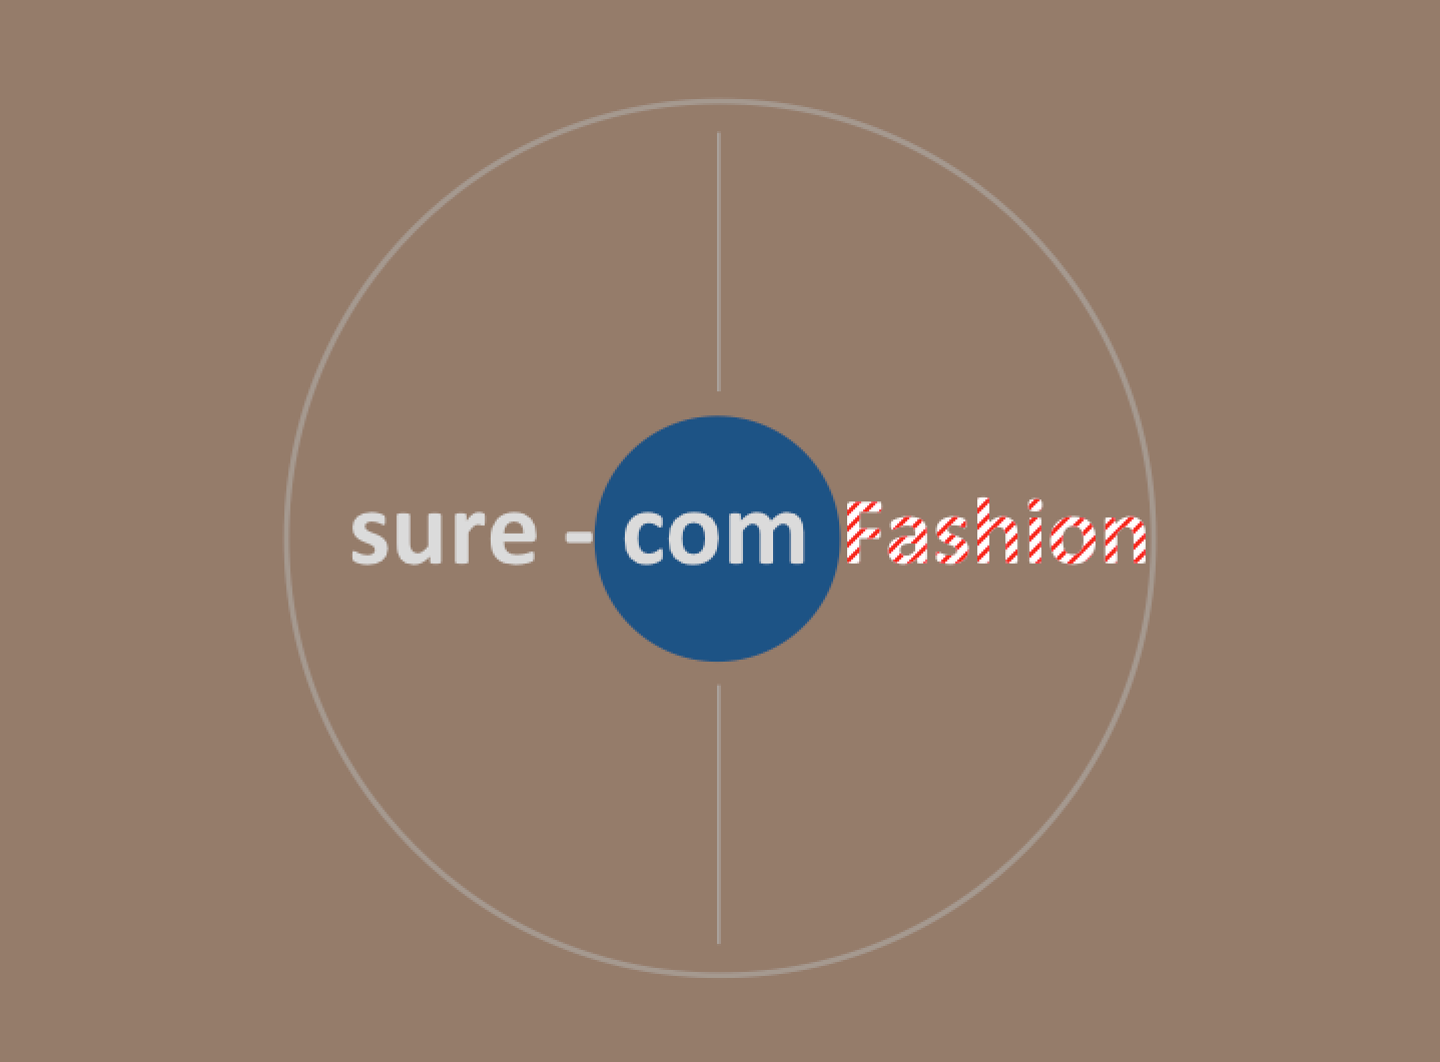 sure-com-fashion